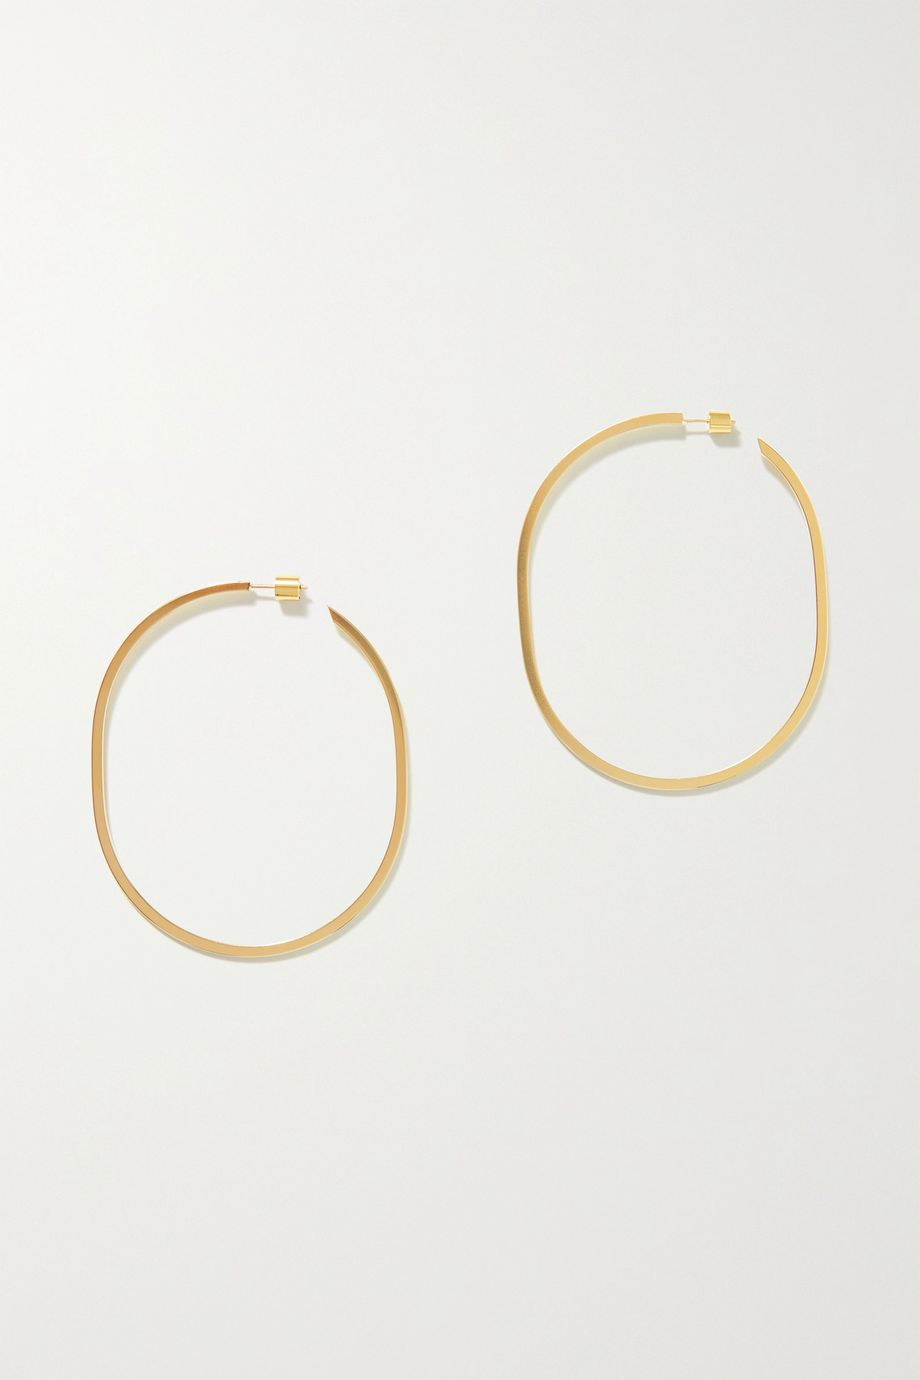 Jennifer Fisher Oval Thread gold-plated hoop earrings